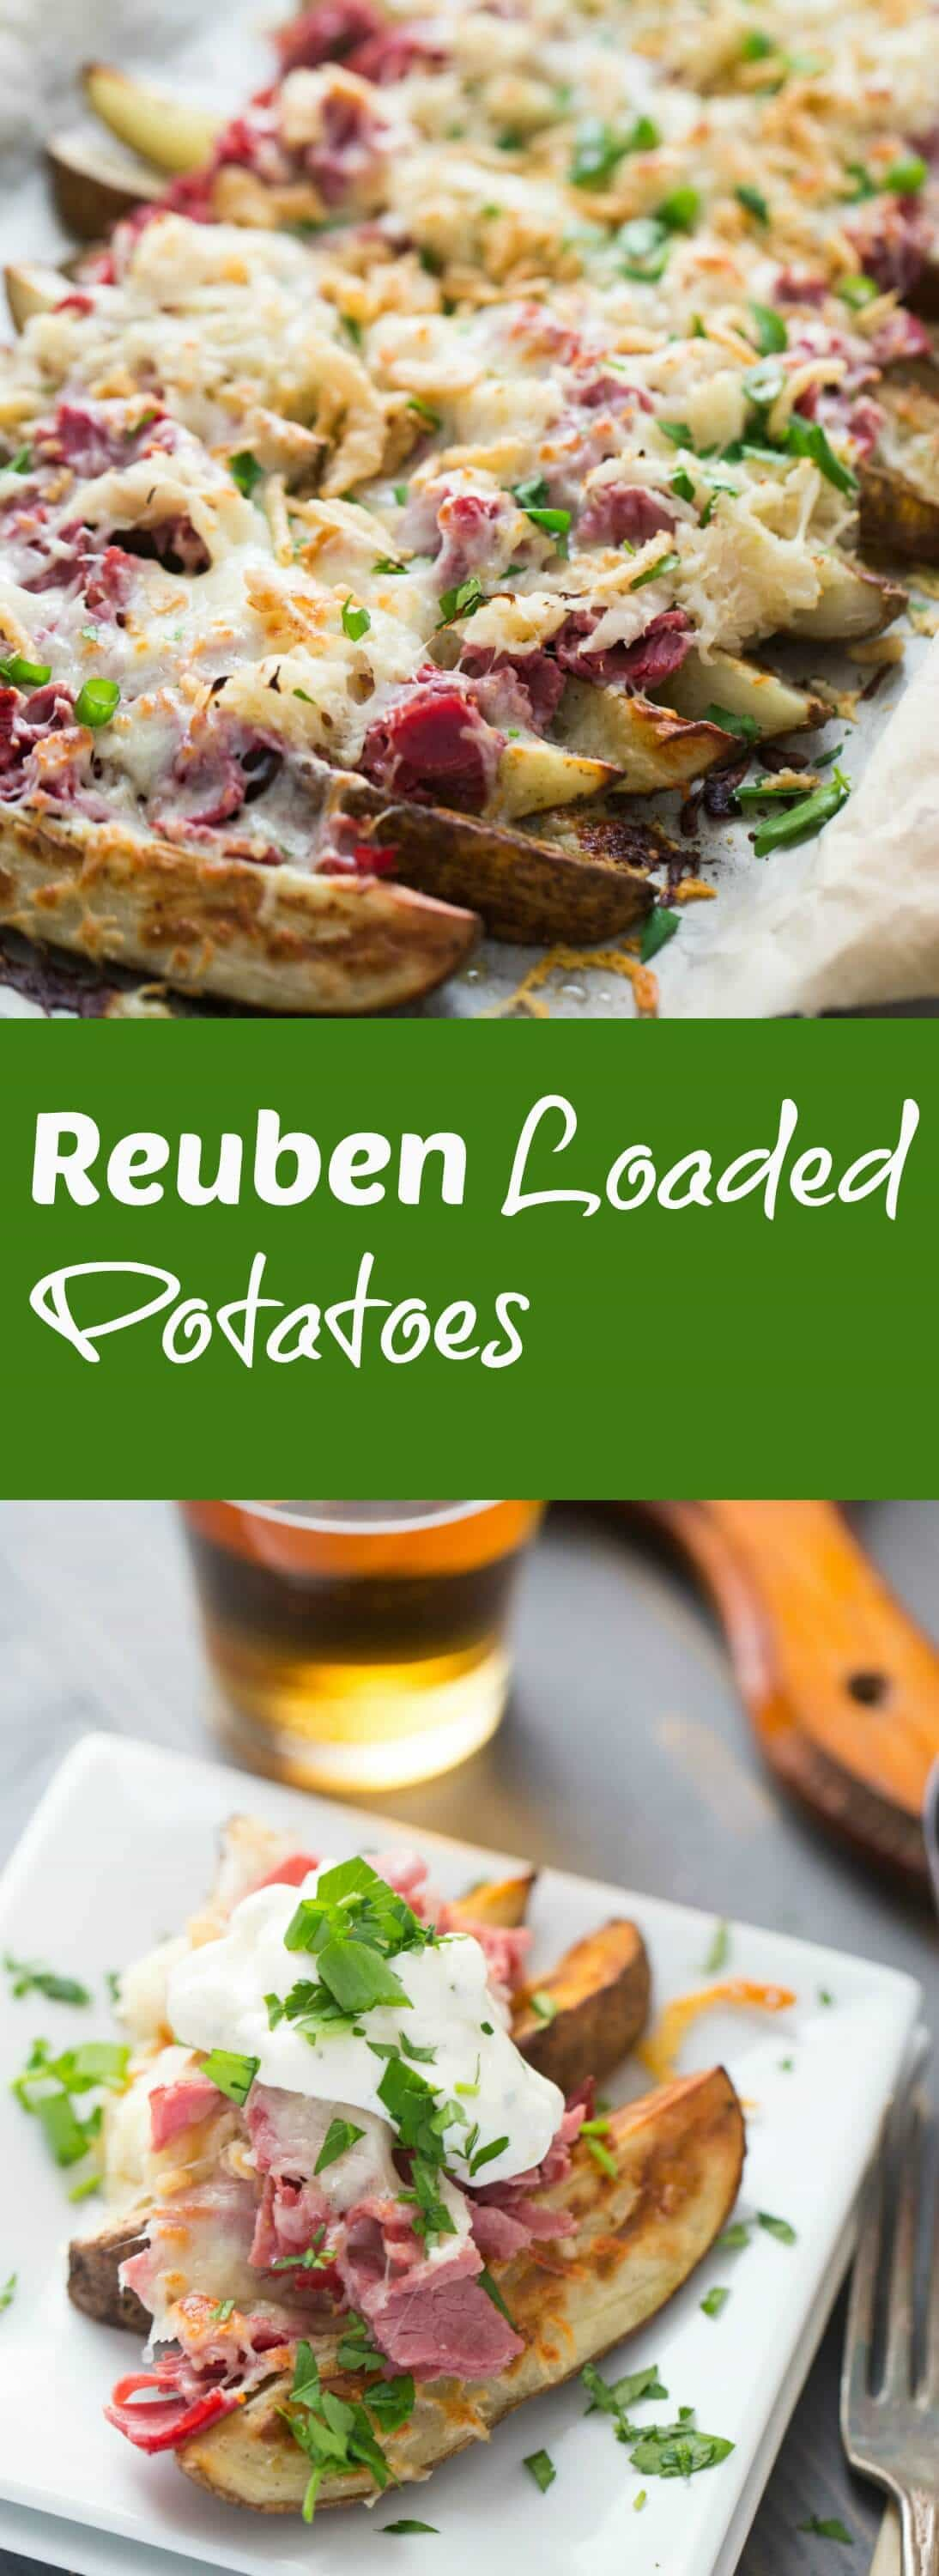 This loaded potatoes recipe is so good! Classic reuben ingredients are a piled high on top of crispy potato wedges! All that you need is a cold pint of beer on the side! lemonsforlulu.com